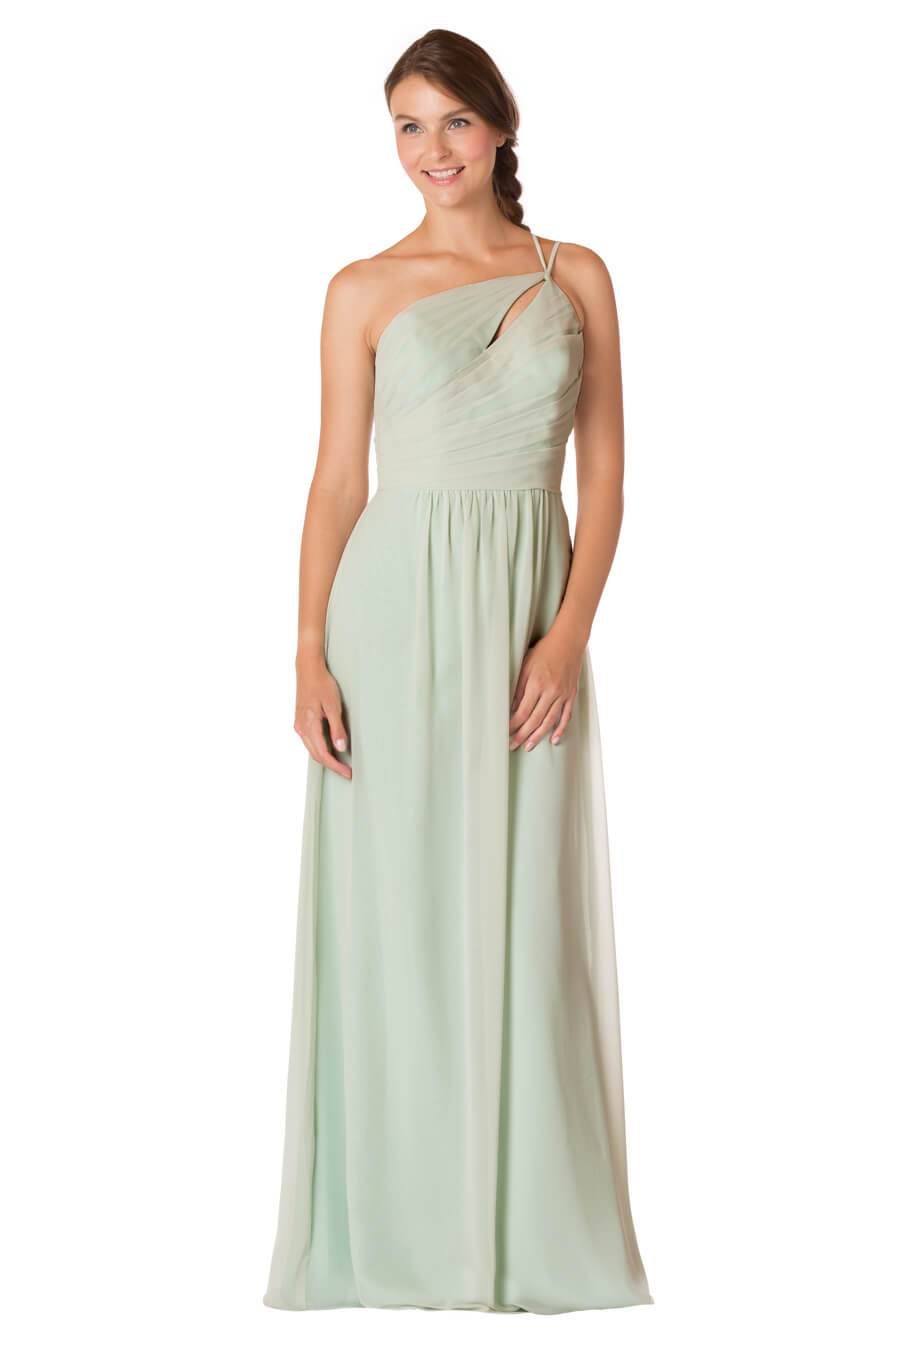 Style 730 bari jay bridesmaids hundreds of different styles and color combination bridesmaids dresses to choose from ombrellifo Images